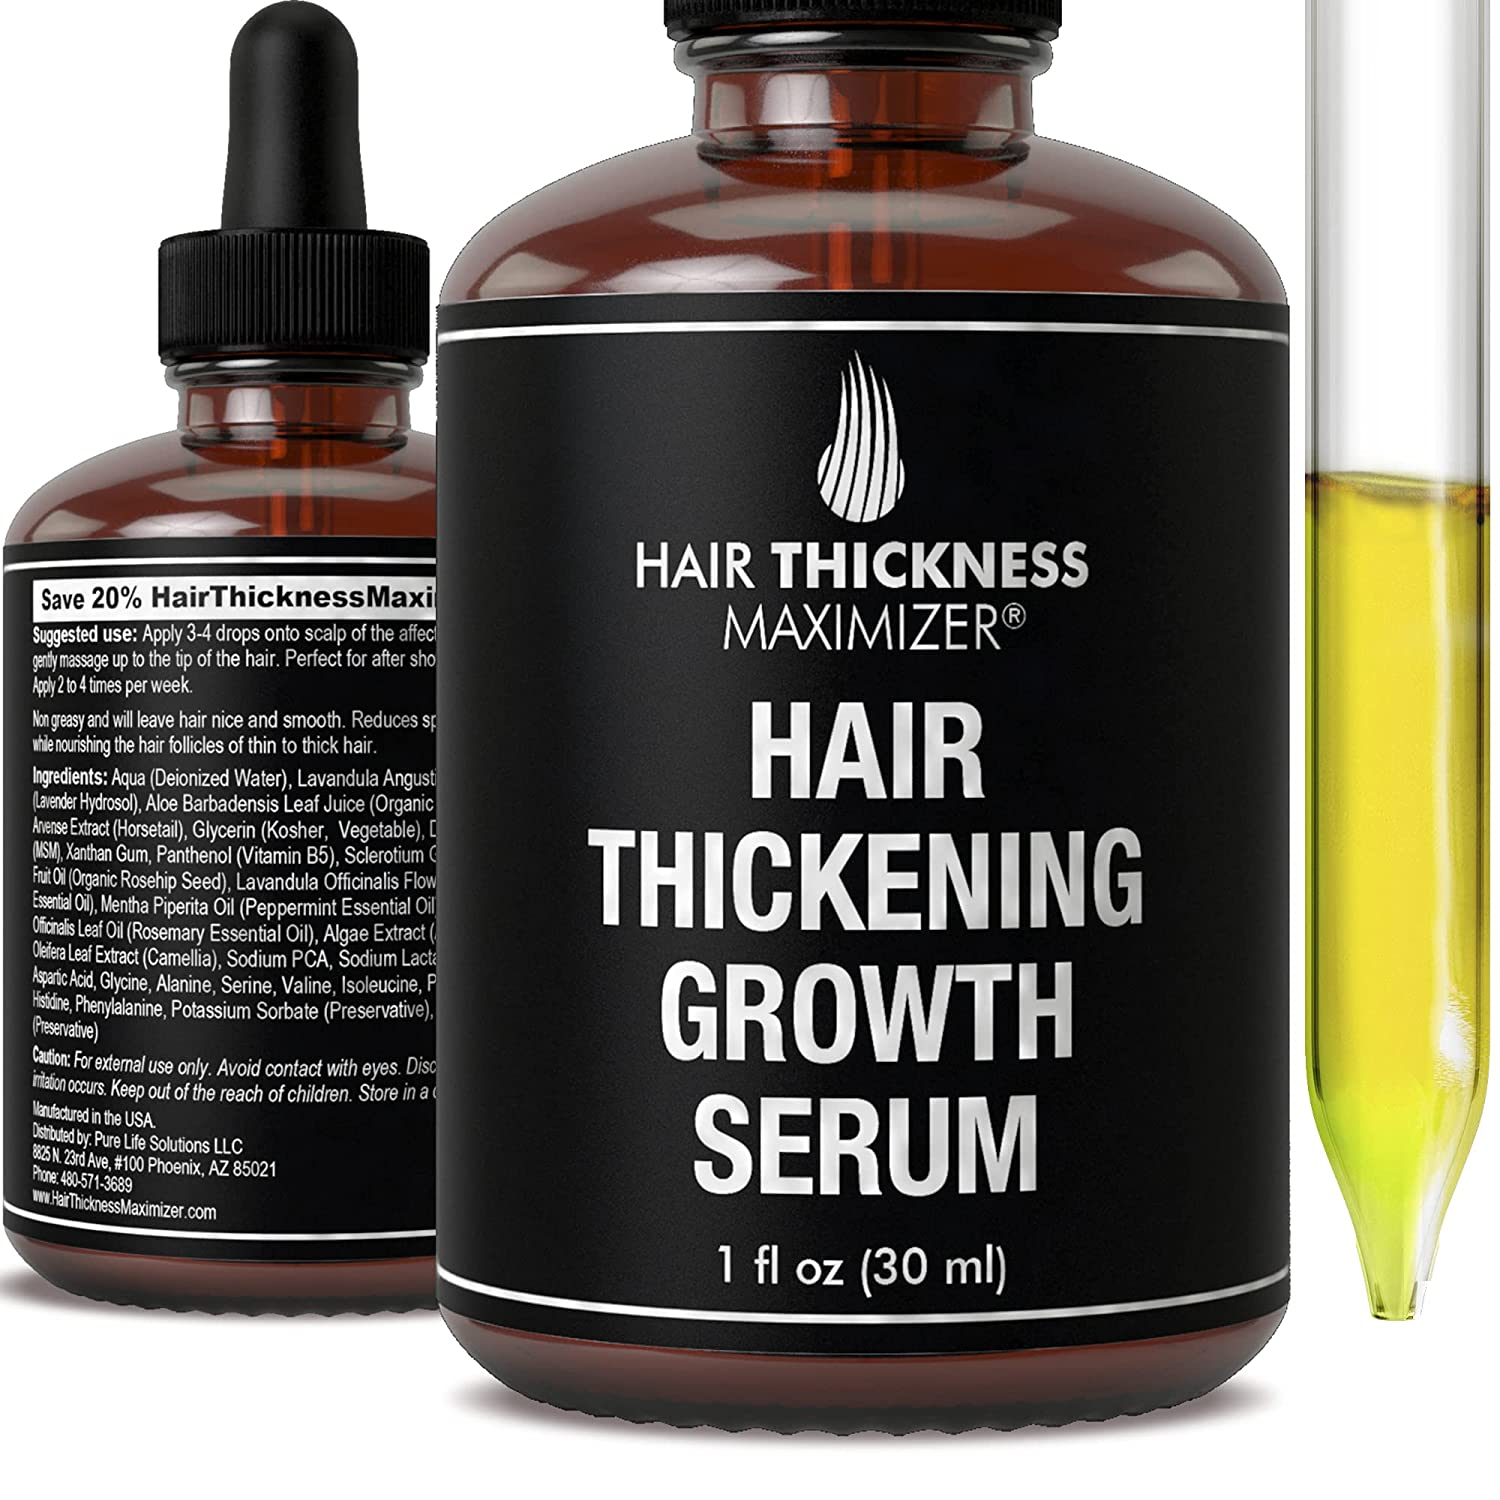 Hair Growth Serum - Arlington Mall Loss Treatment by Thick Prevention Max 50% OFF